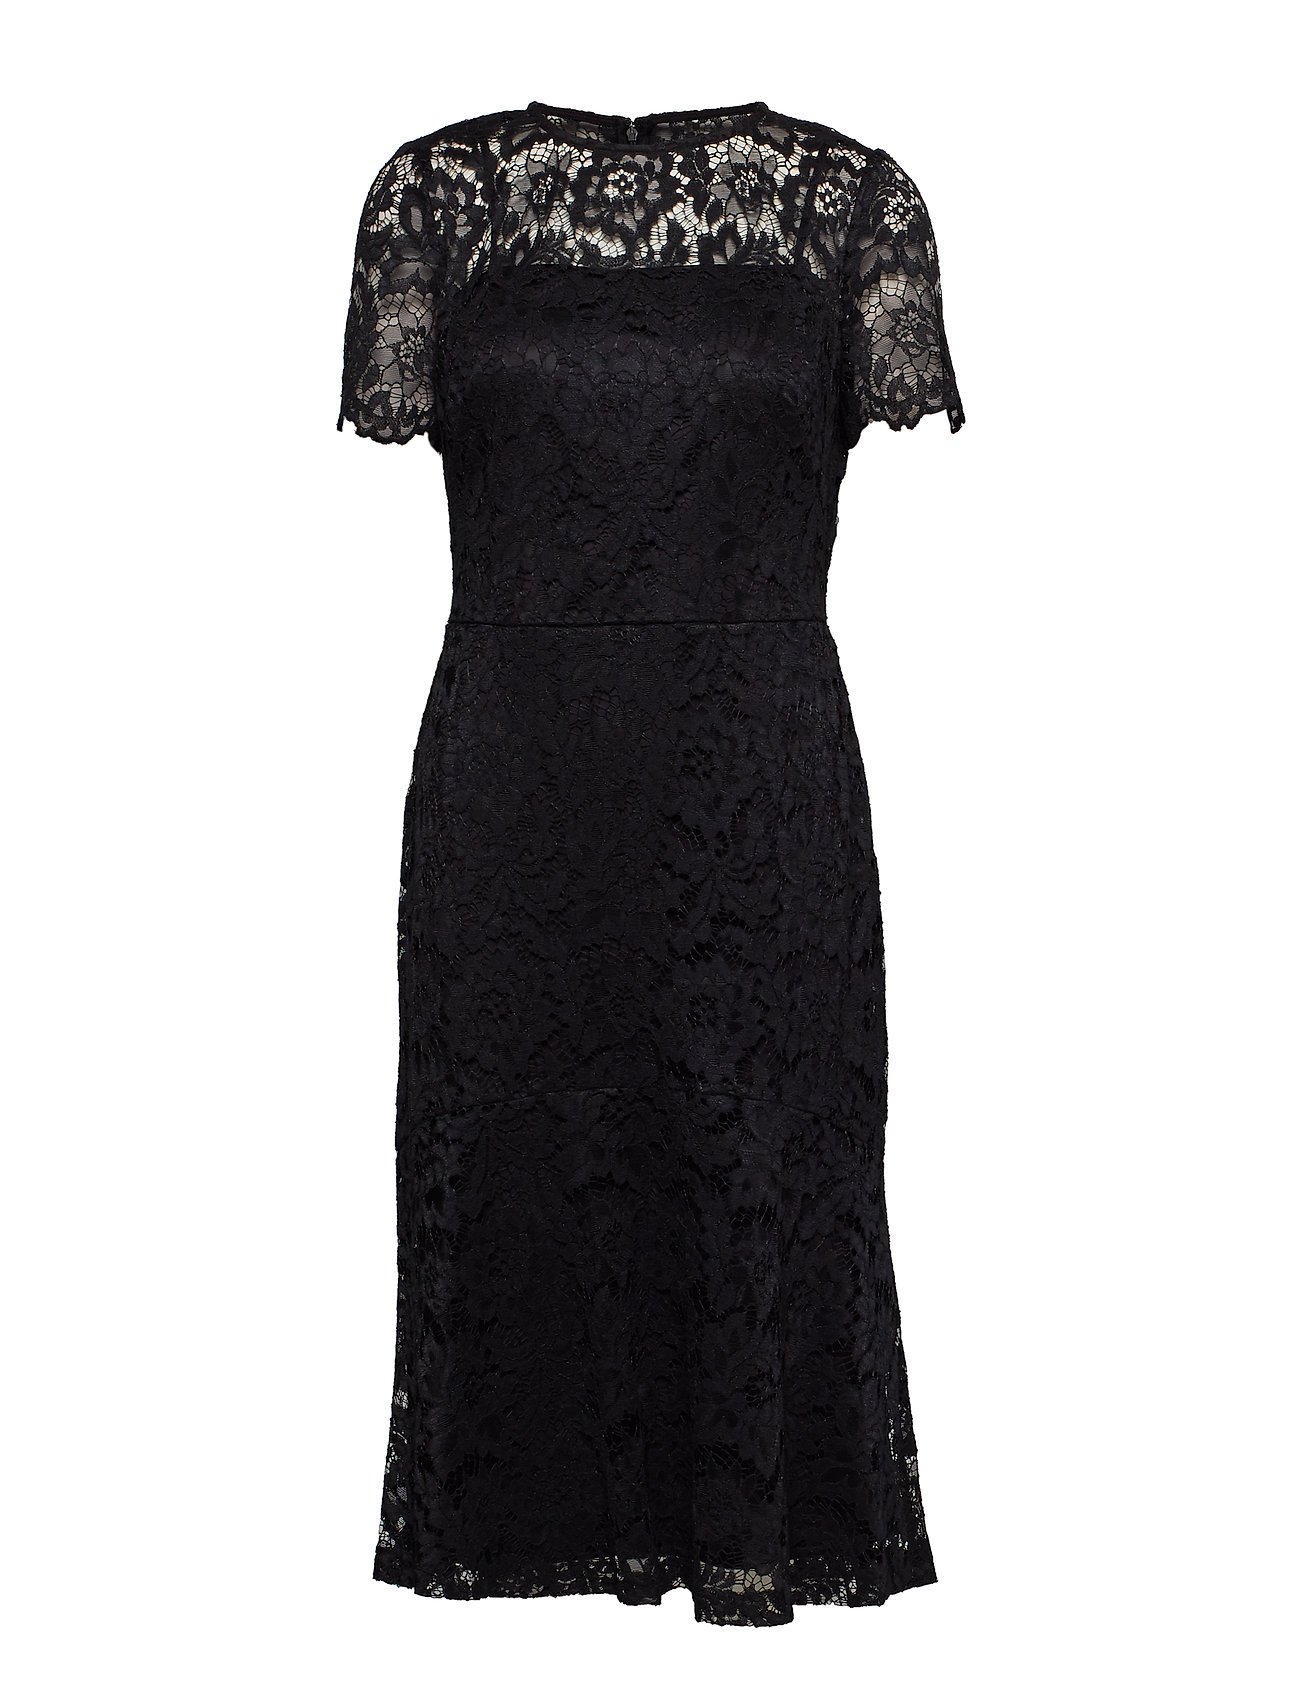 Lauren Ralph Lauren Lace Cocktail Dress